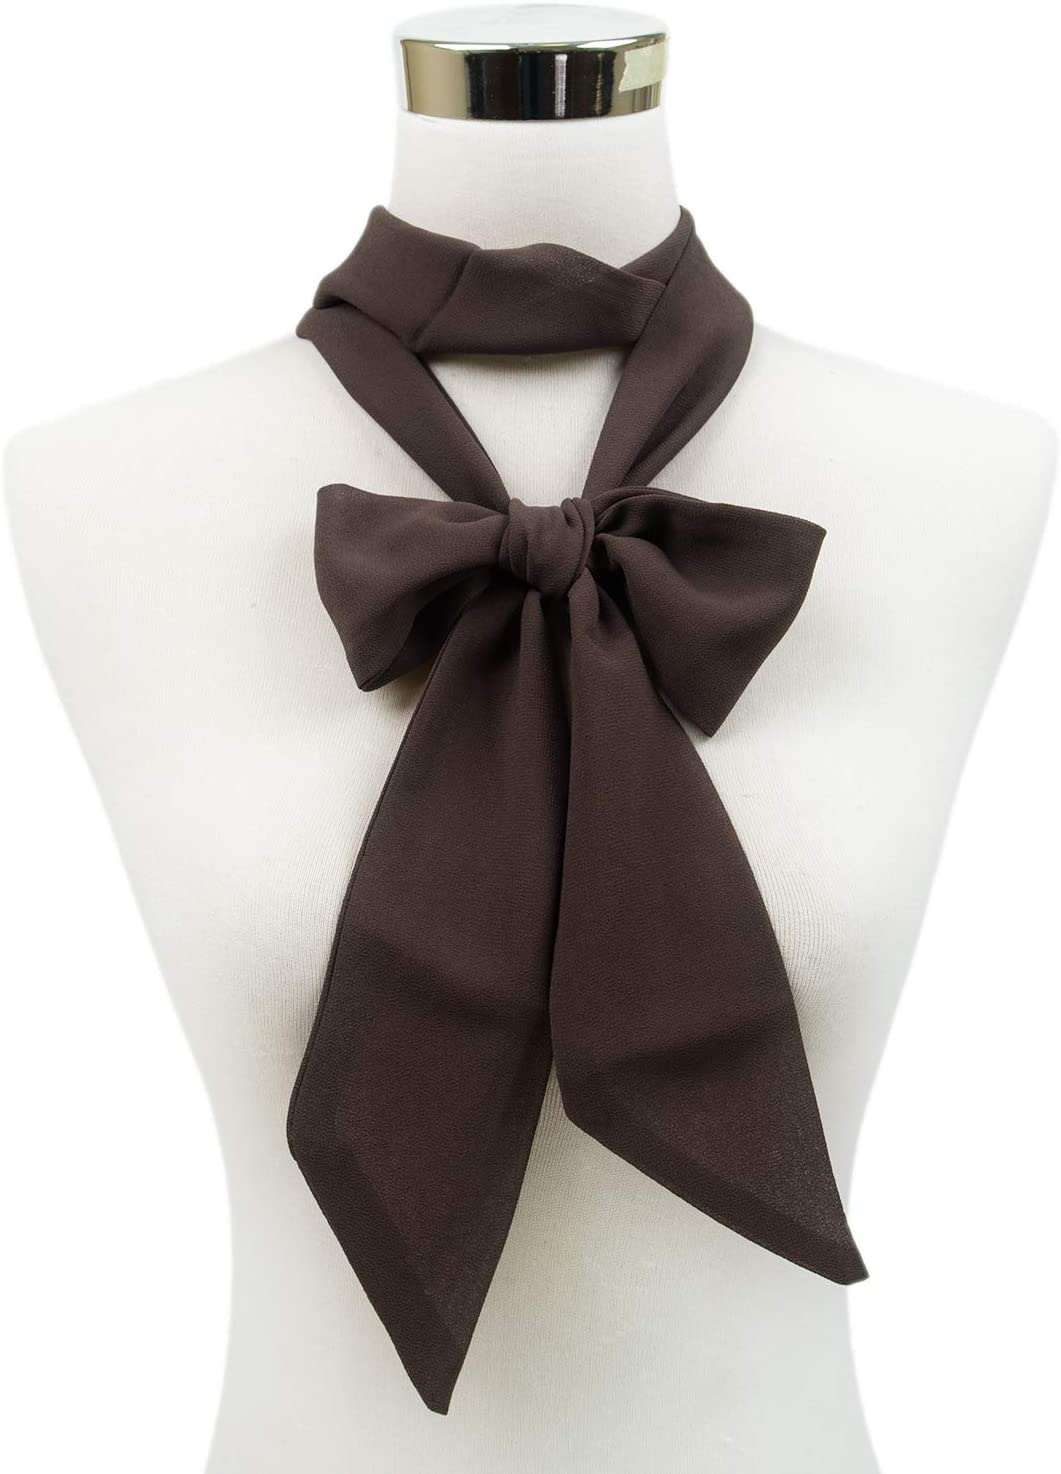 White Solid Color Scarf Ribbon Thin Long Stylish Basic Accessory Girls Winter